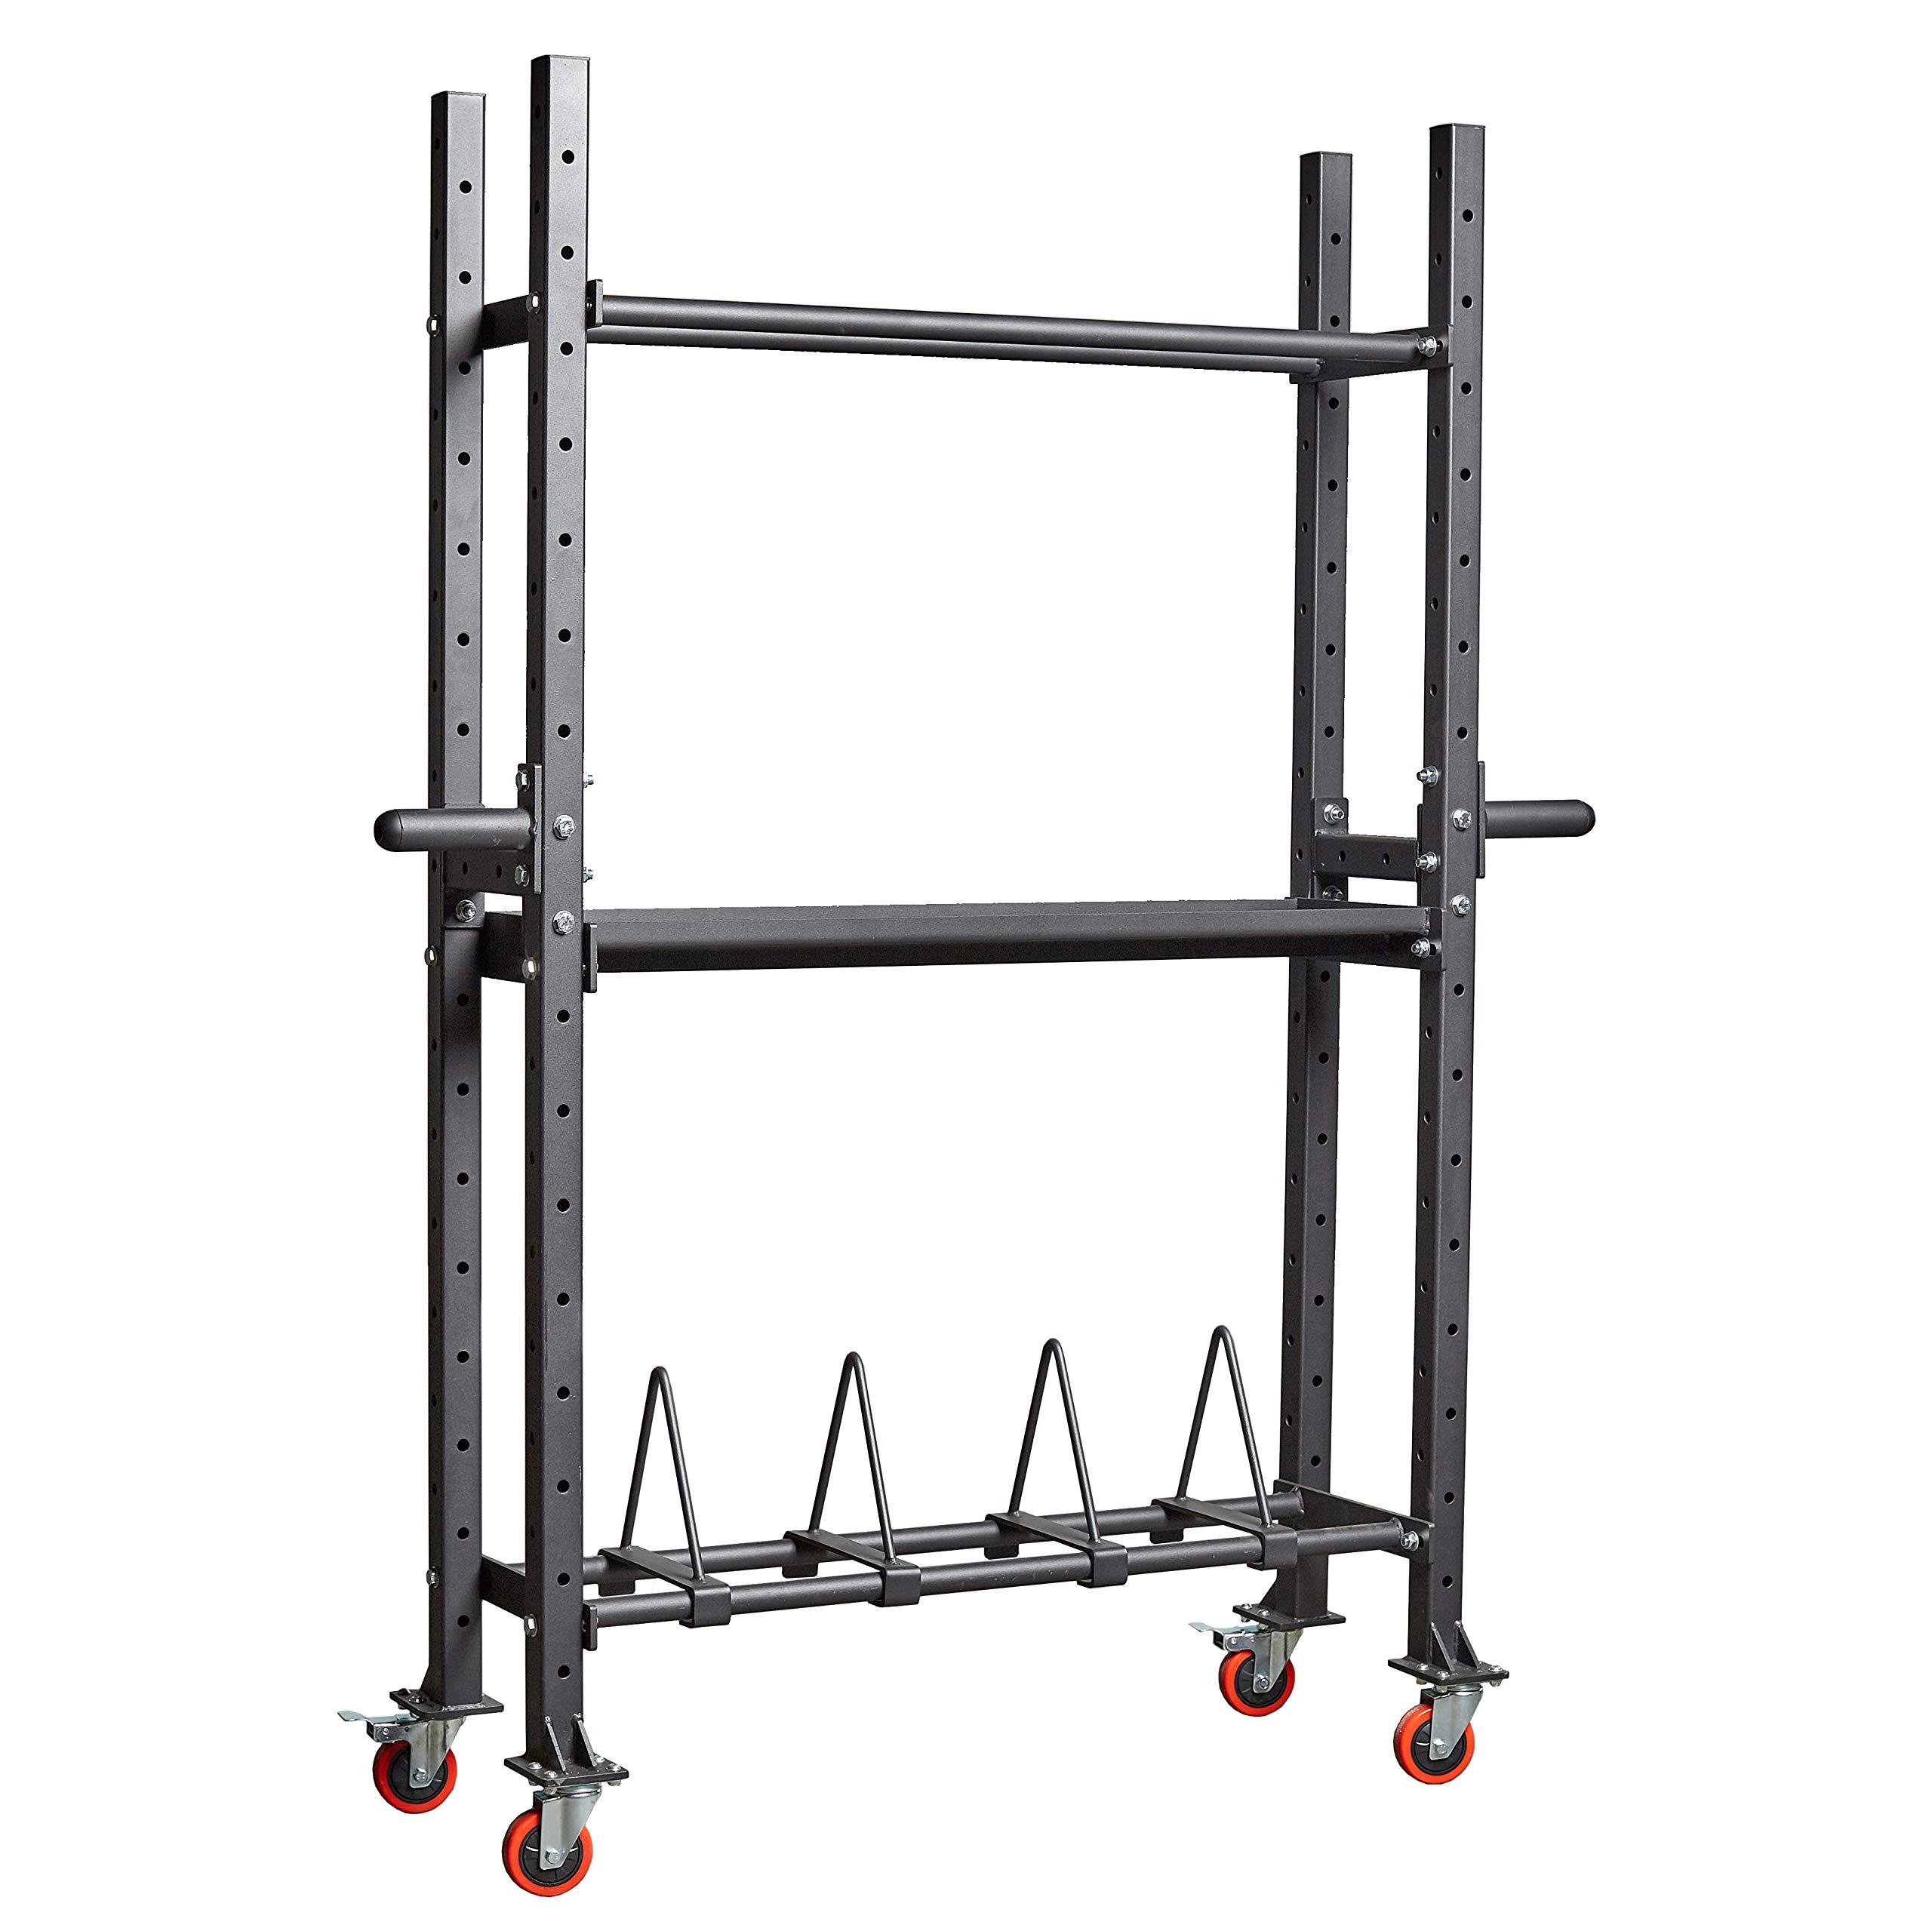 REP Modular Storage System - MSS1 by Rep Fitness